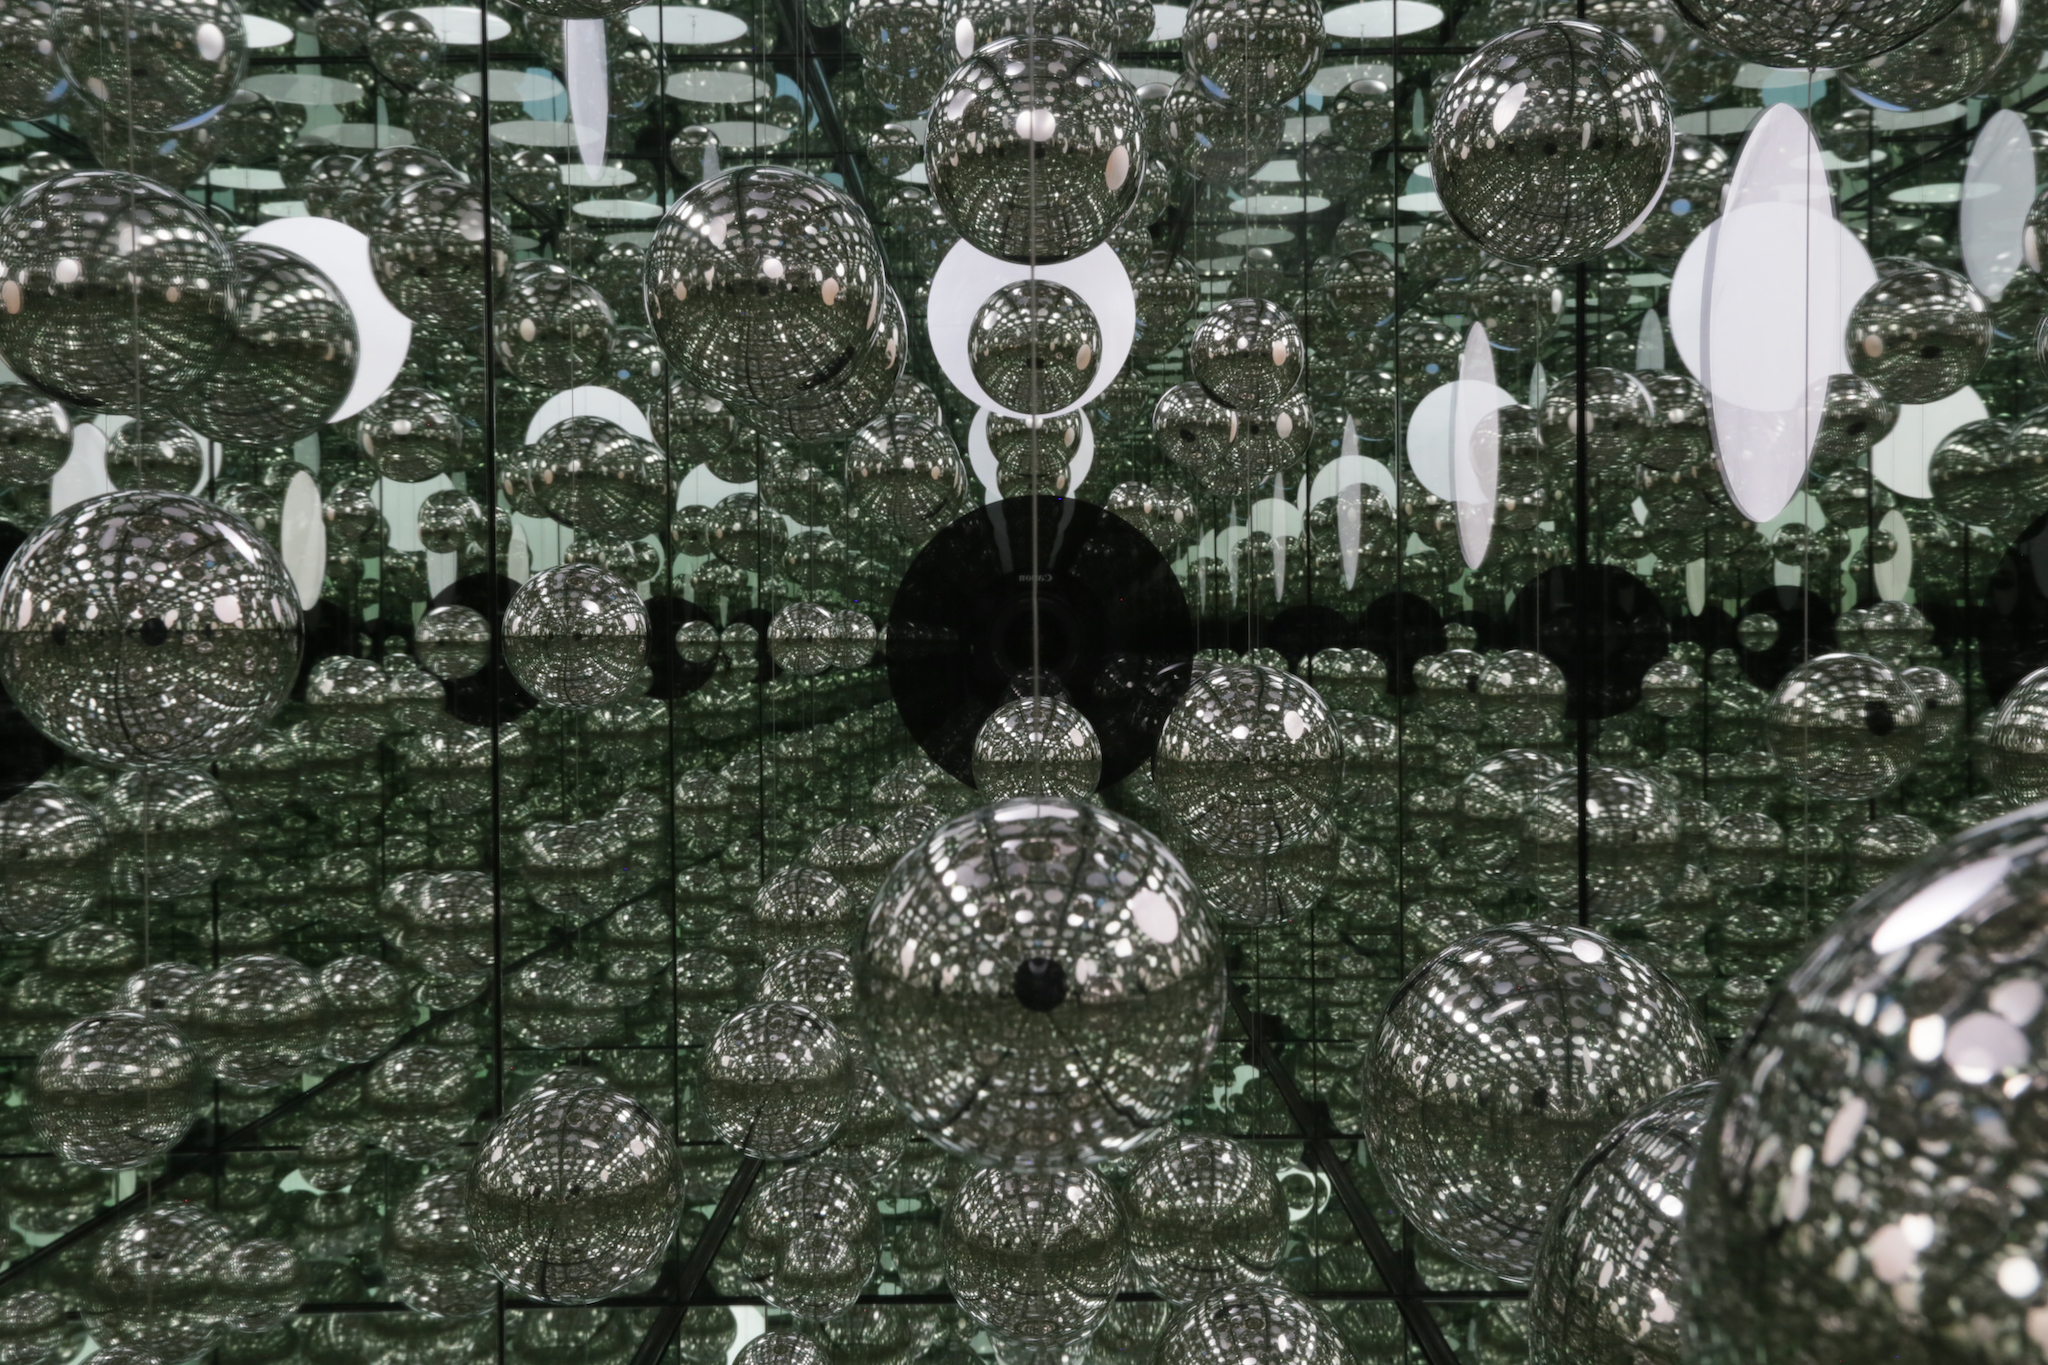 An Infinity Mirror Room will go on display somewhere in Chicago this summer